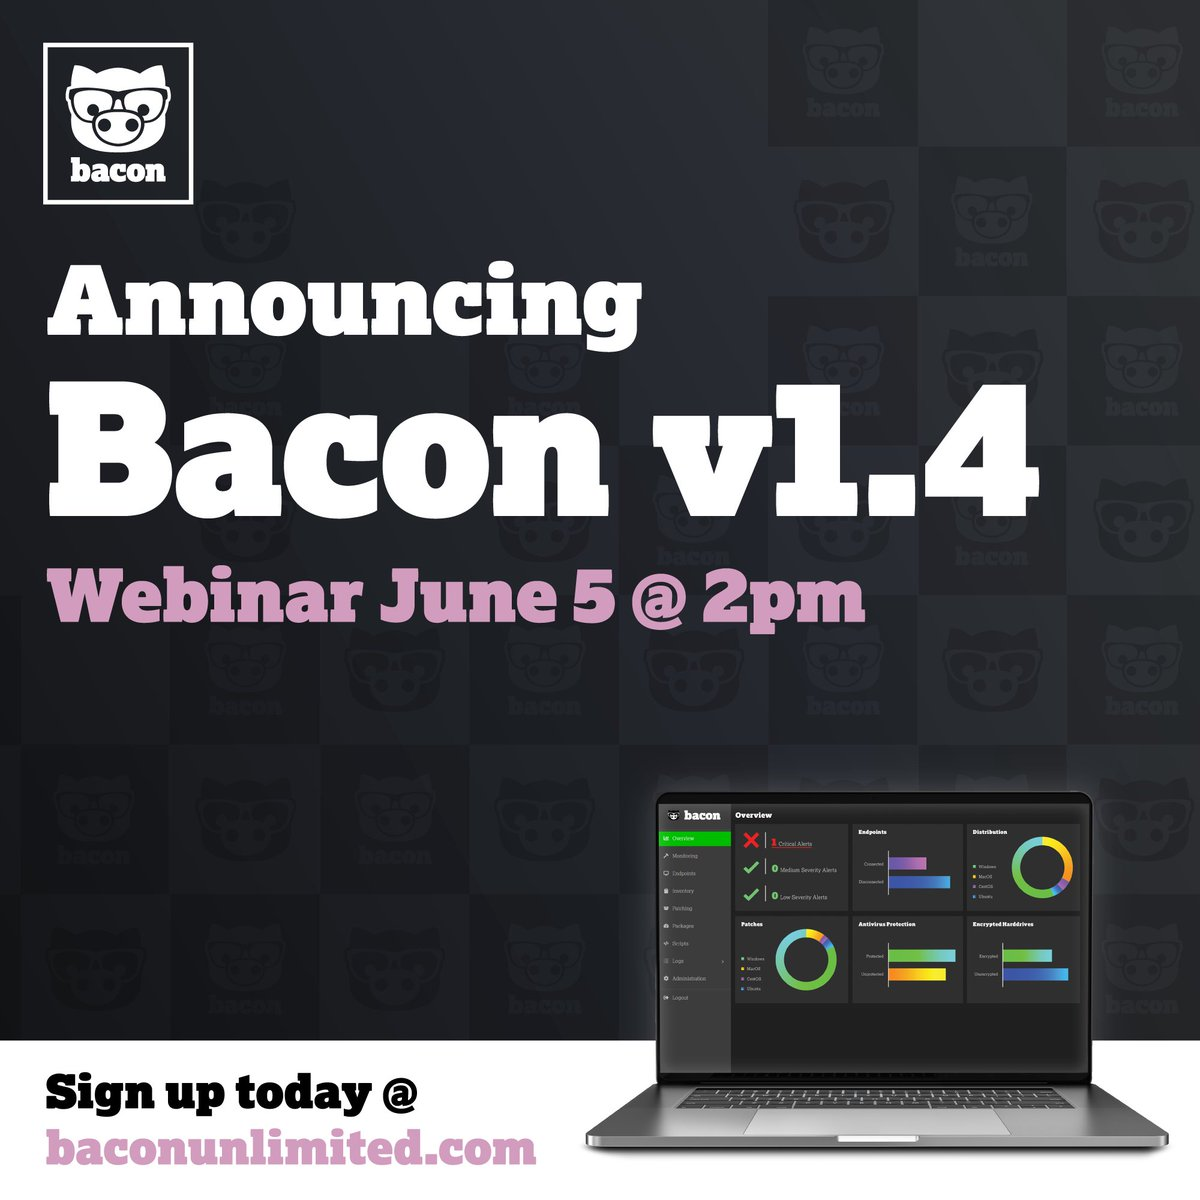 Announcing Bacon v1.4! FREE #webinar on June 5 @ 2pm.  Simplify your IT and sign up today at https://baconunlimited.com  #baconunlimited #getbacon #bacon #itsupport #itservices #itsoftware #tech #newtech #technology #innovation #workstation #computerpic.twitter.com/SeETy8wbBH